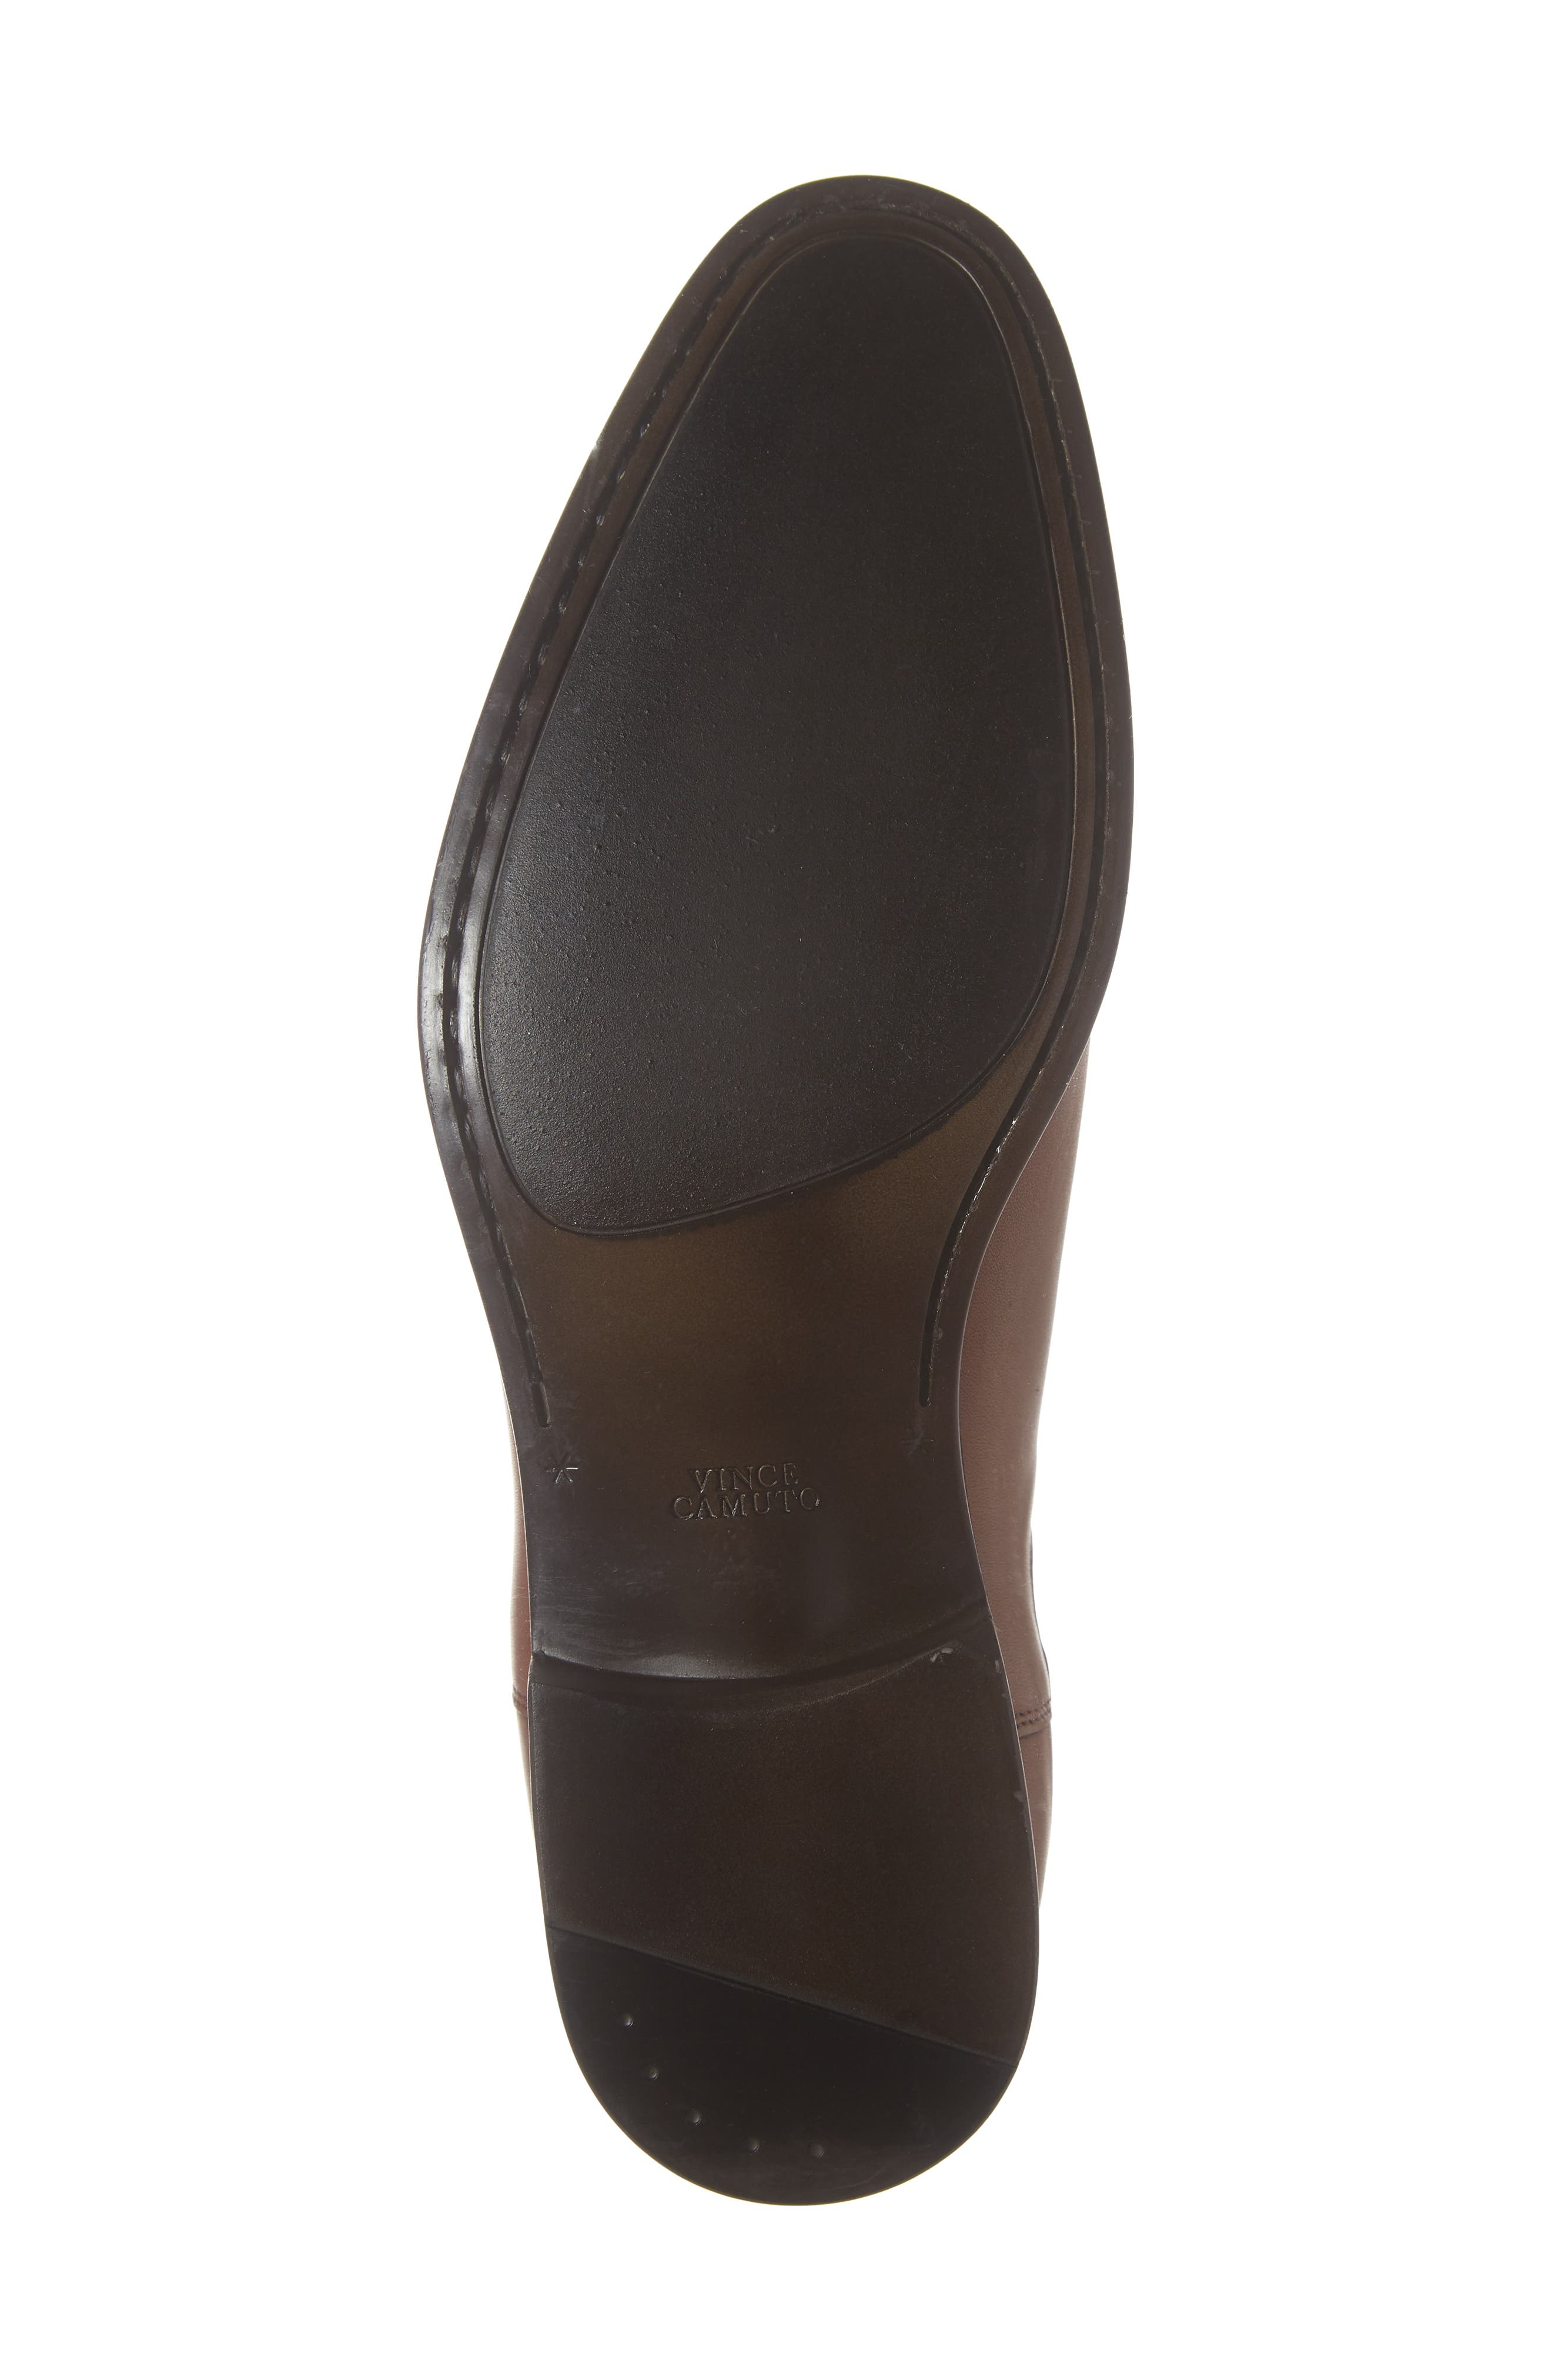 VINCE CAMUTO, Ivo Mid Chelsea Boot, Alternate thumbnail 6, color, COGNAC LEATHER